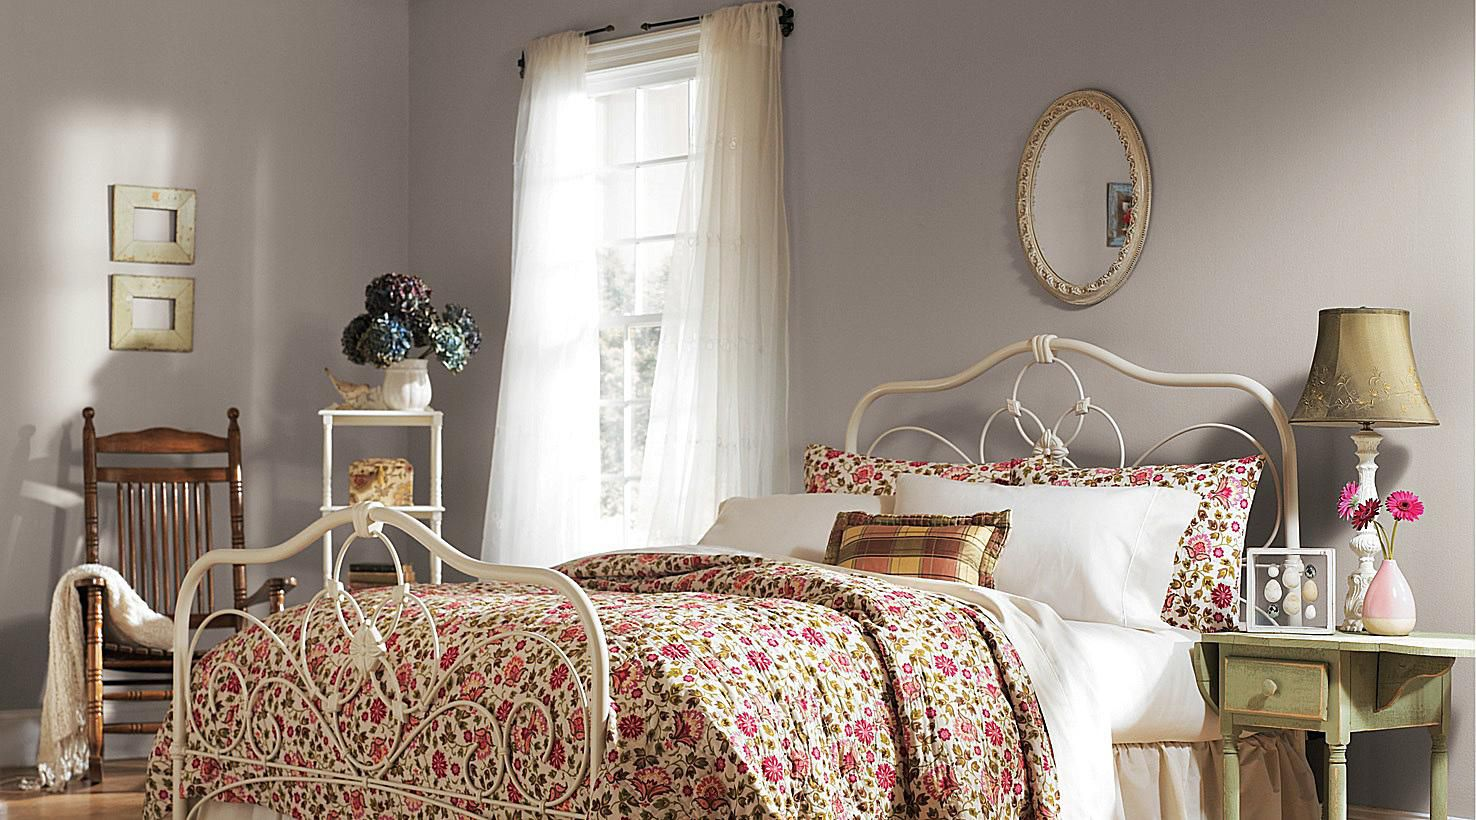 Paint Colors For Small Bedrooms: 13 Tranquil Paint Colors For Bedrooms